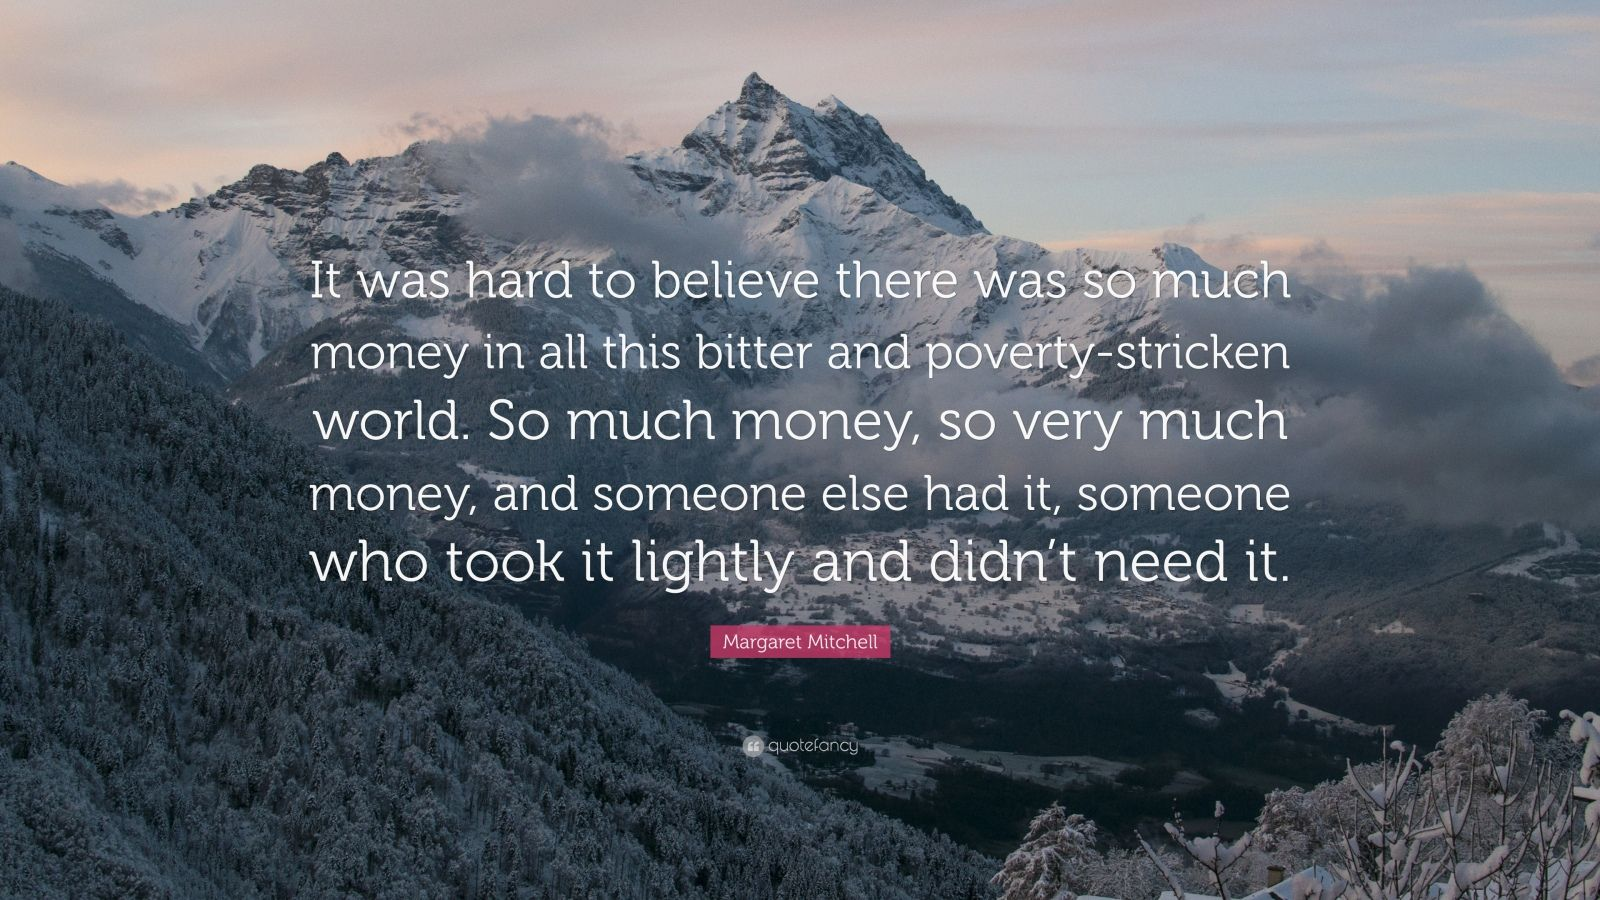 "Margaret Mitchell Quote: ""It was hard to believe there was so much money in all this bitter and poverty-stricken world. So much money, so very much money, and someone else had it, someone who took it lightly and didn't need it."""